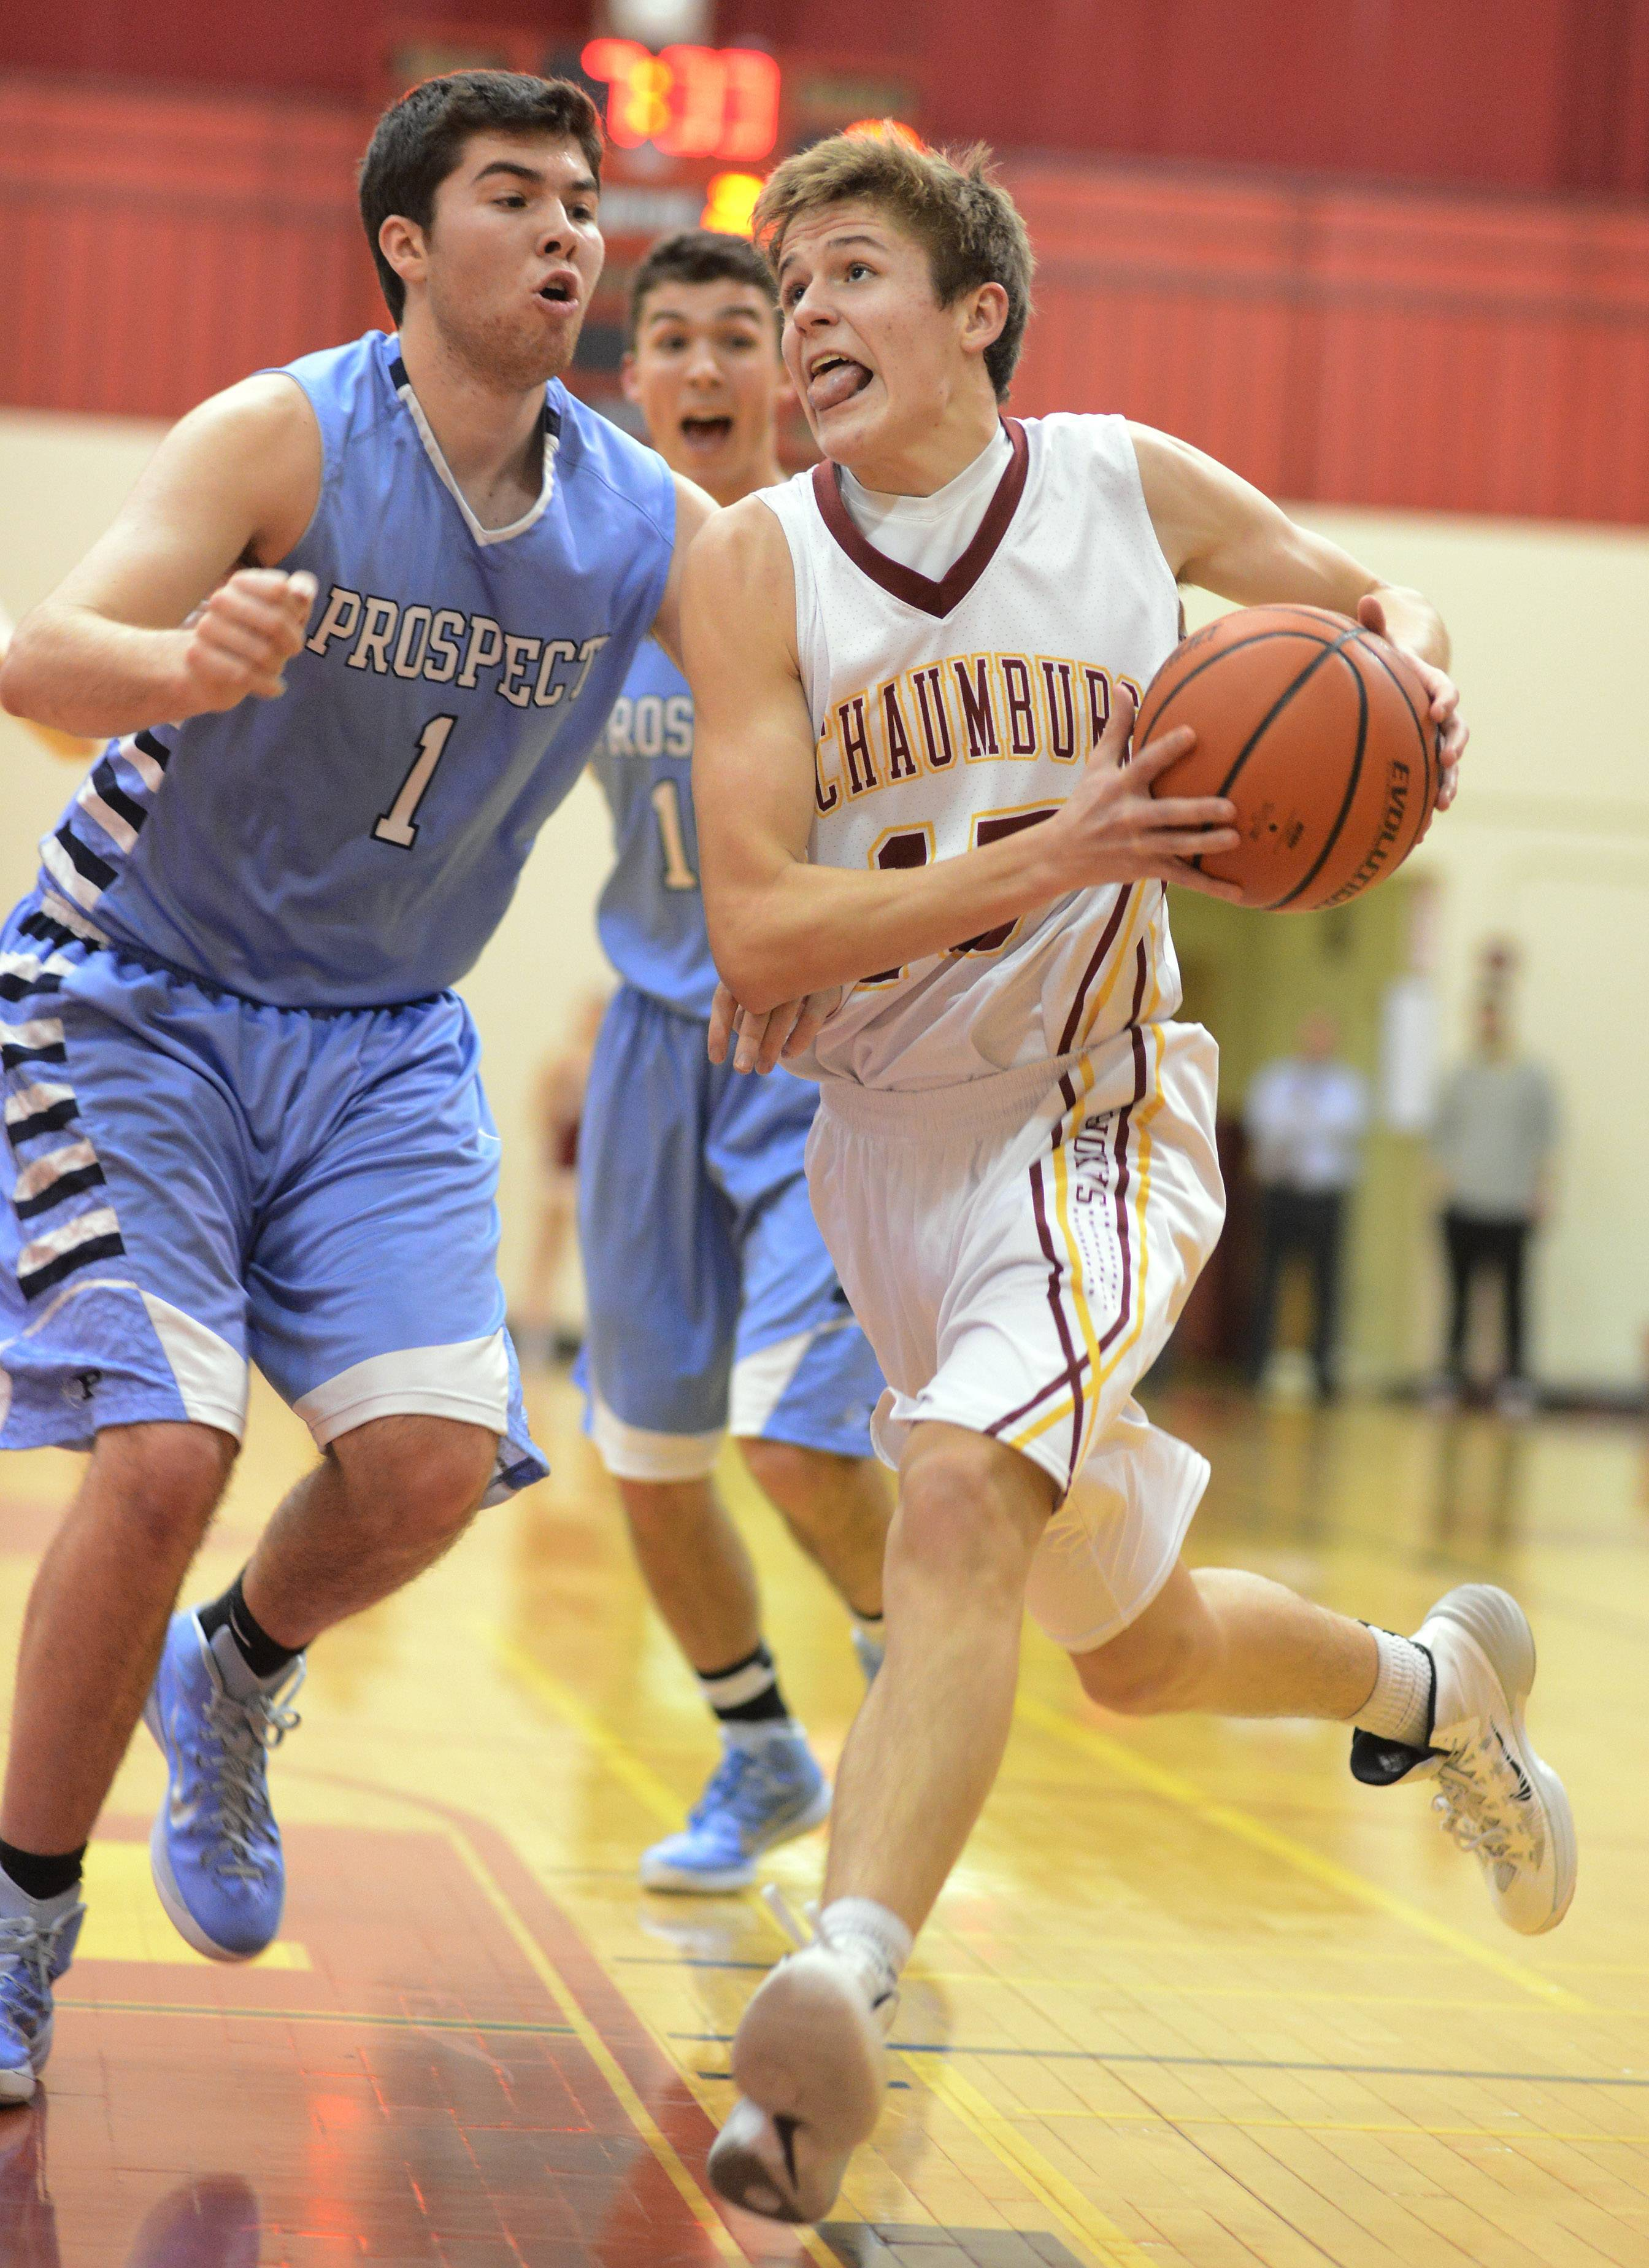 Schaumburg has a defensive day to remember